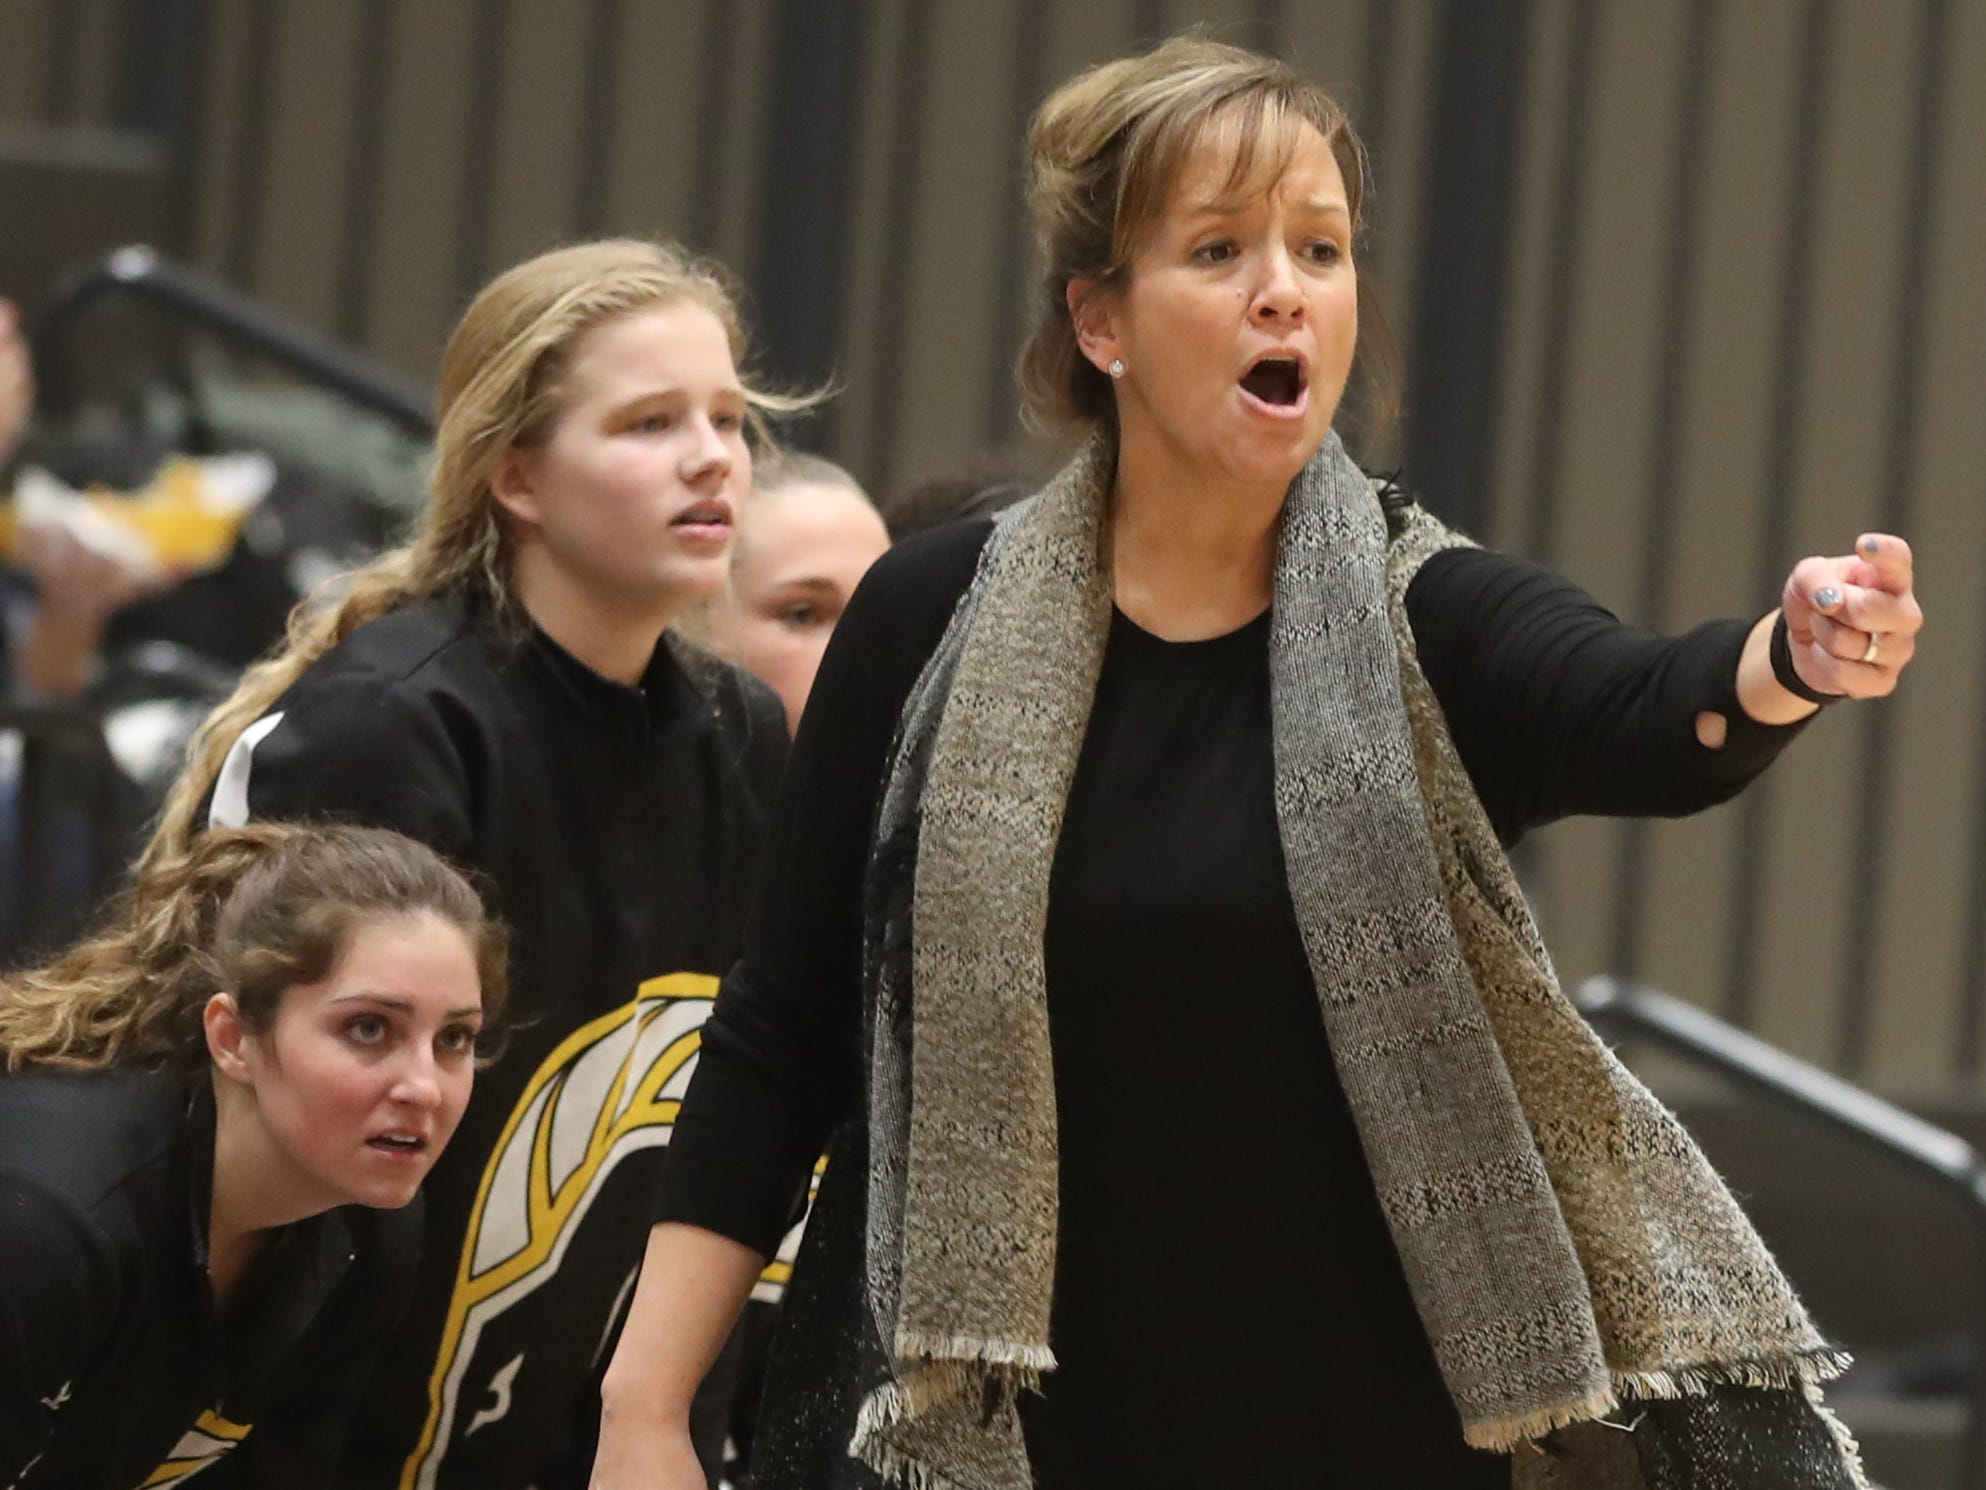 Southeast Polk coach Tracy Dailey shoots from the sideline Feb. 5 in a game against No. 1 Johnston at Johnston High School. The Dragons won the game 89-67.